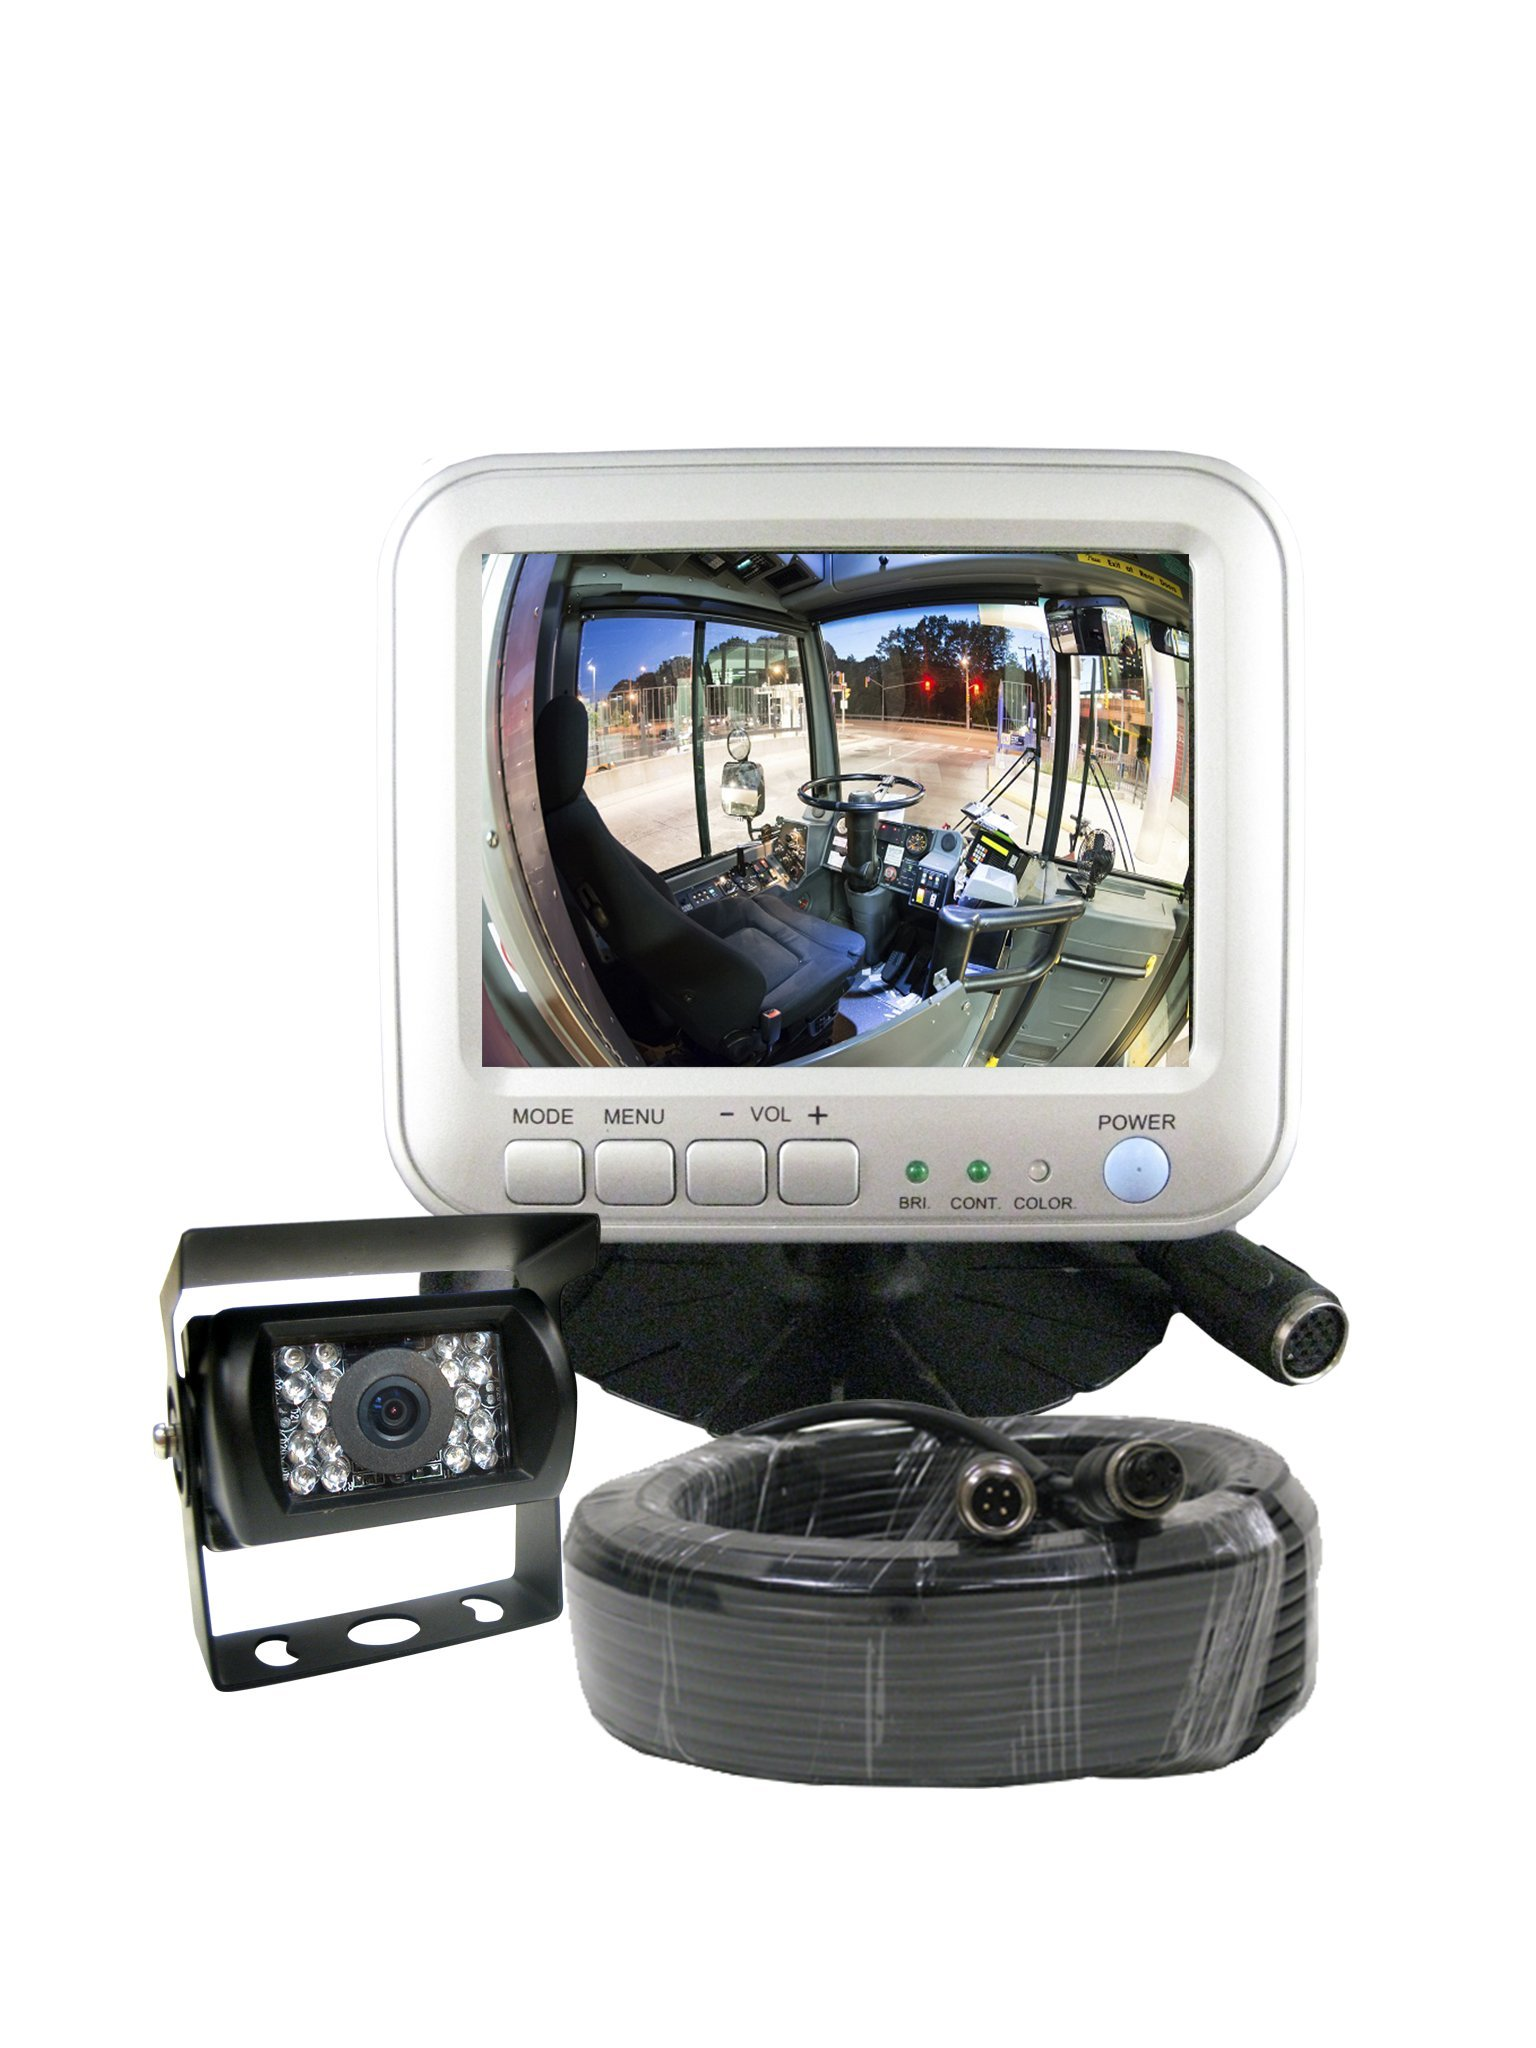 5'' LCD Color Rear View Backup Camera System for RVs, Motorhomes, Trucks, Vans & Commercial Vehicles